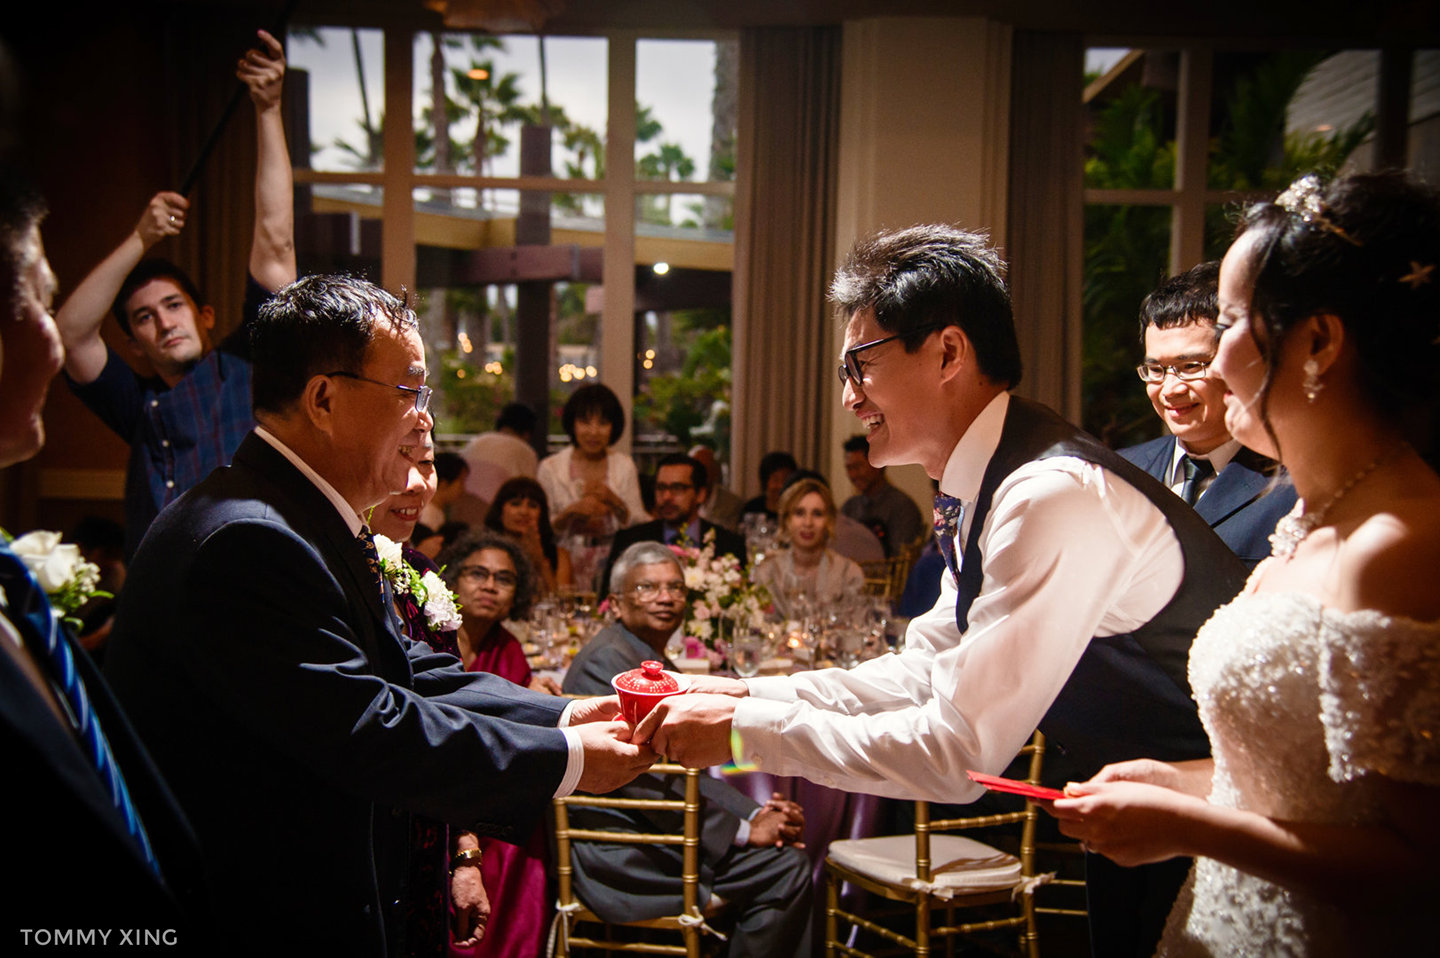 Paradise Point Resort Wedding Xiaolu & Bin San Diego 圣地亚哥婚礼摄影跟拍 Tommy Xing Photography 洛杉矶婚礼婚纱照摄影师 267.jpg